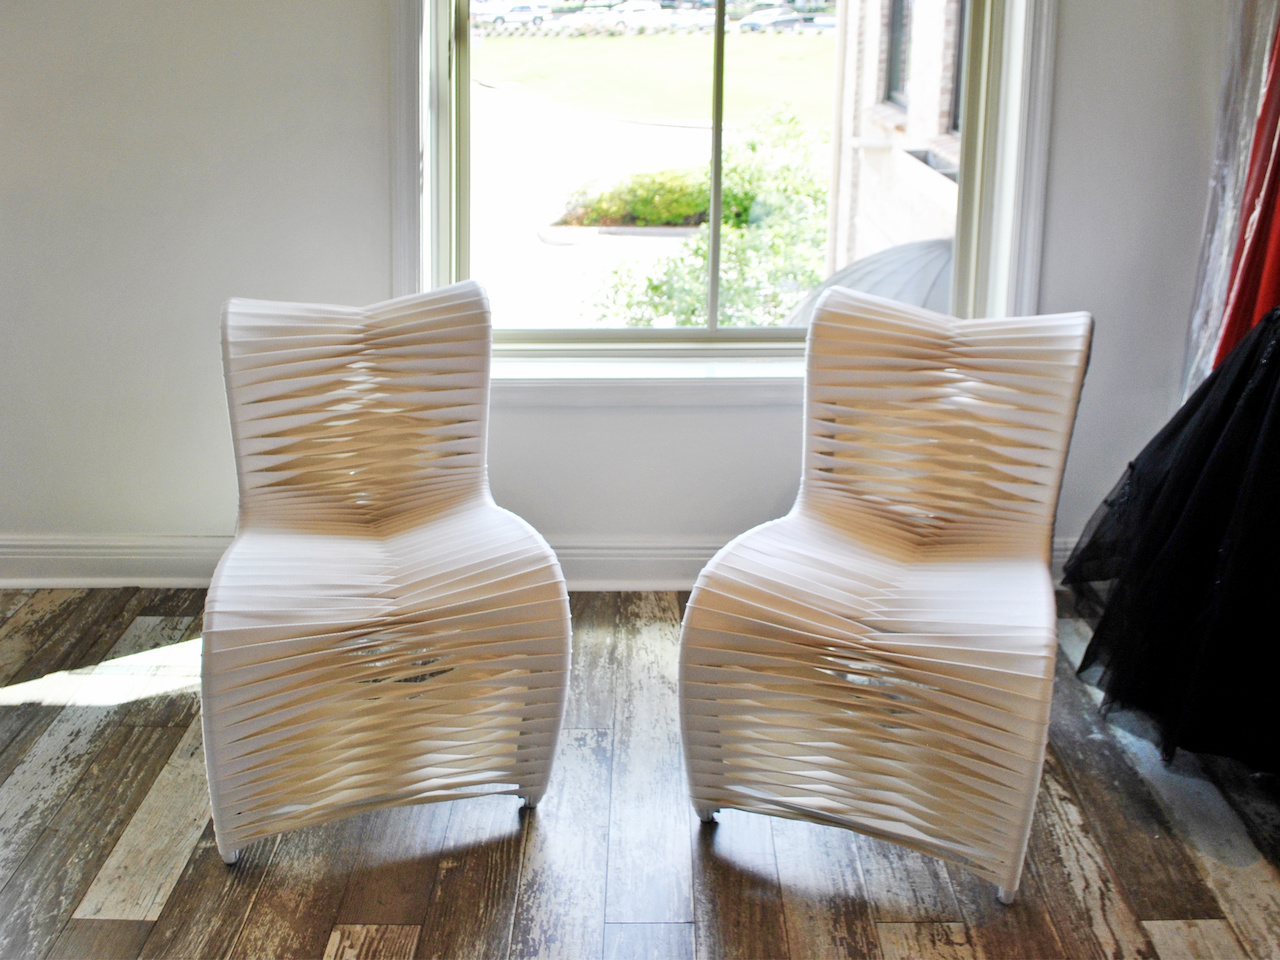 These sleek, modern, feminine chairs from Pandy's shop are perfect for the neighboring boutique, The Clothes Tree by Deborah, which is where they now reside!